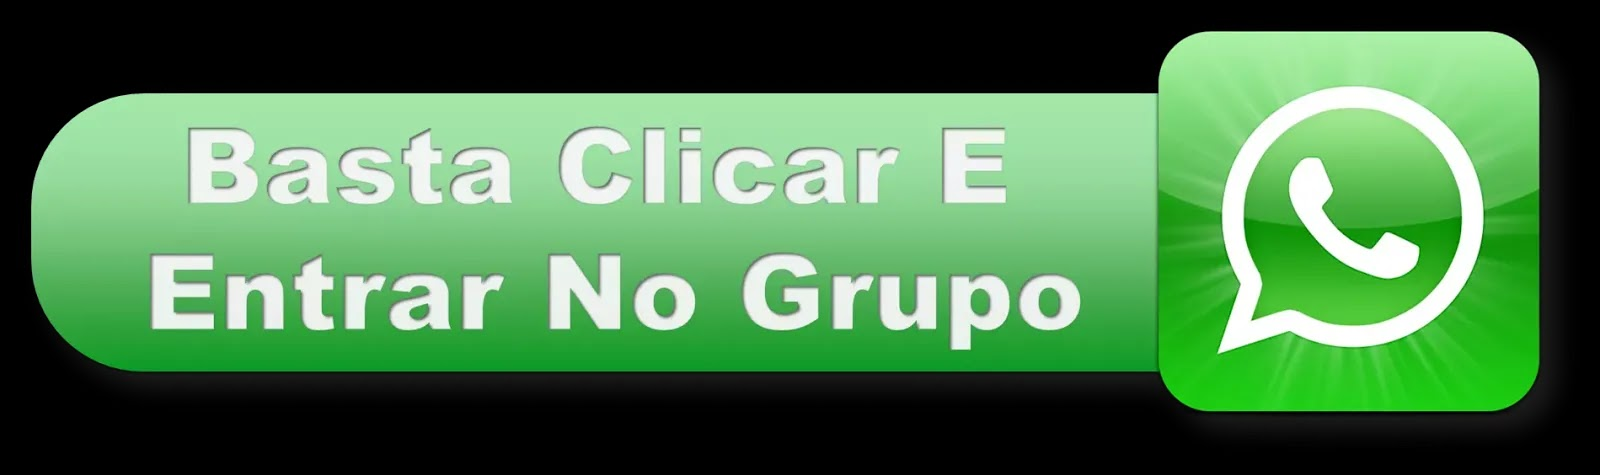 -----------------------------------GRUPO DO WHATSAPP---------------------